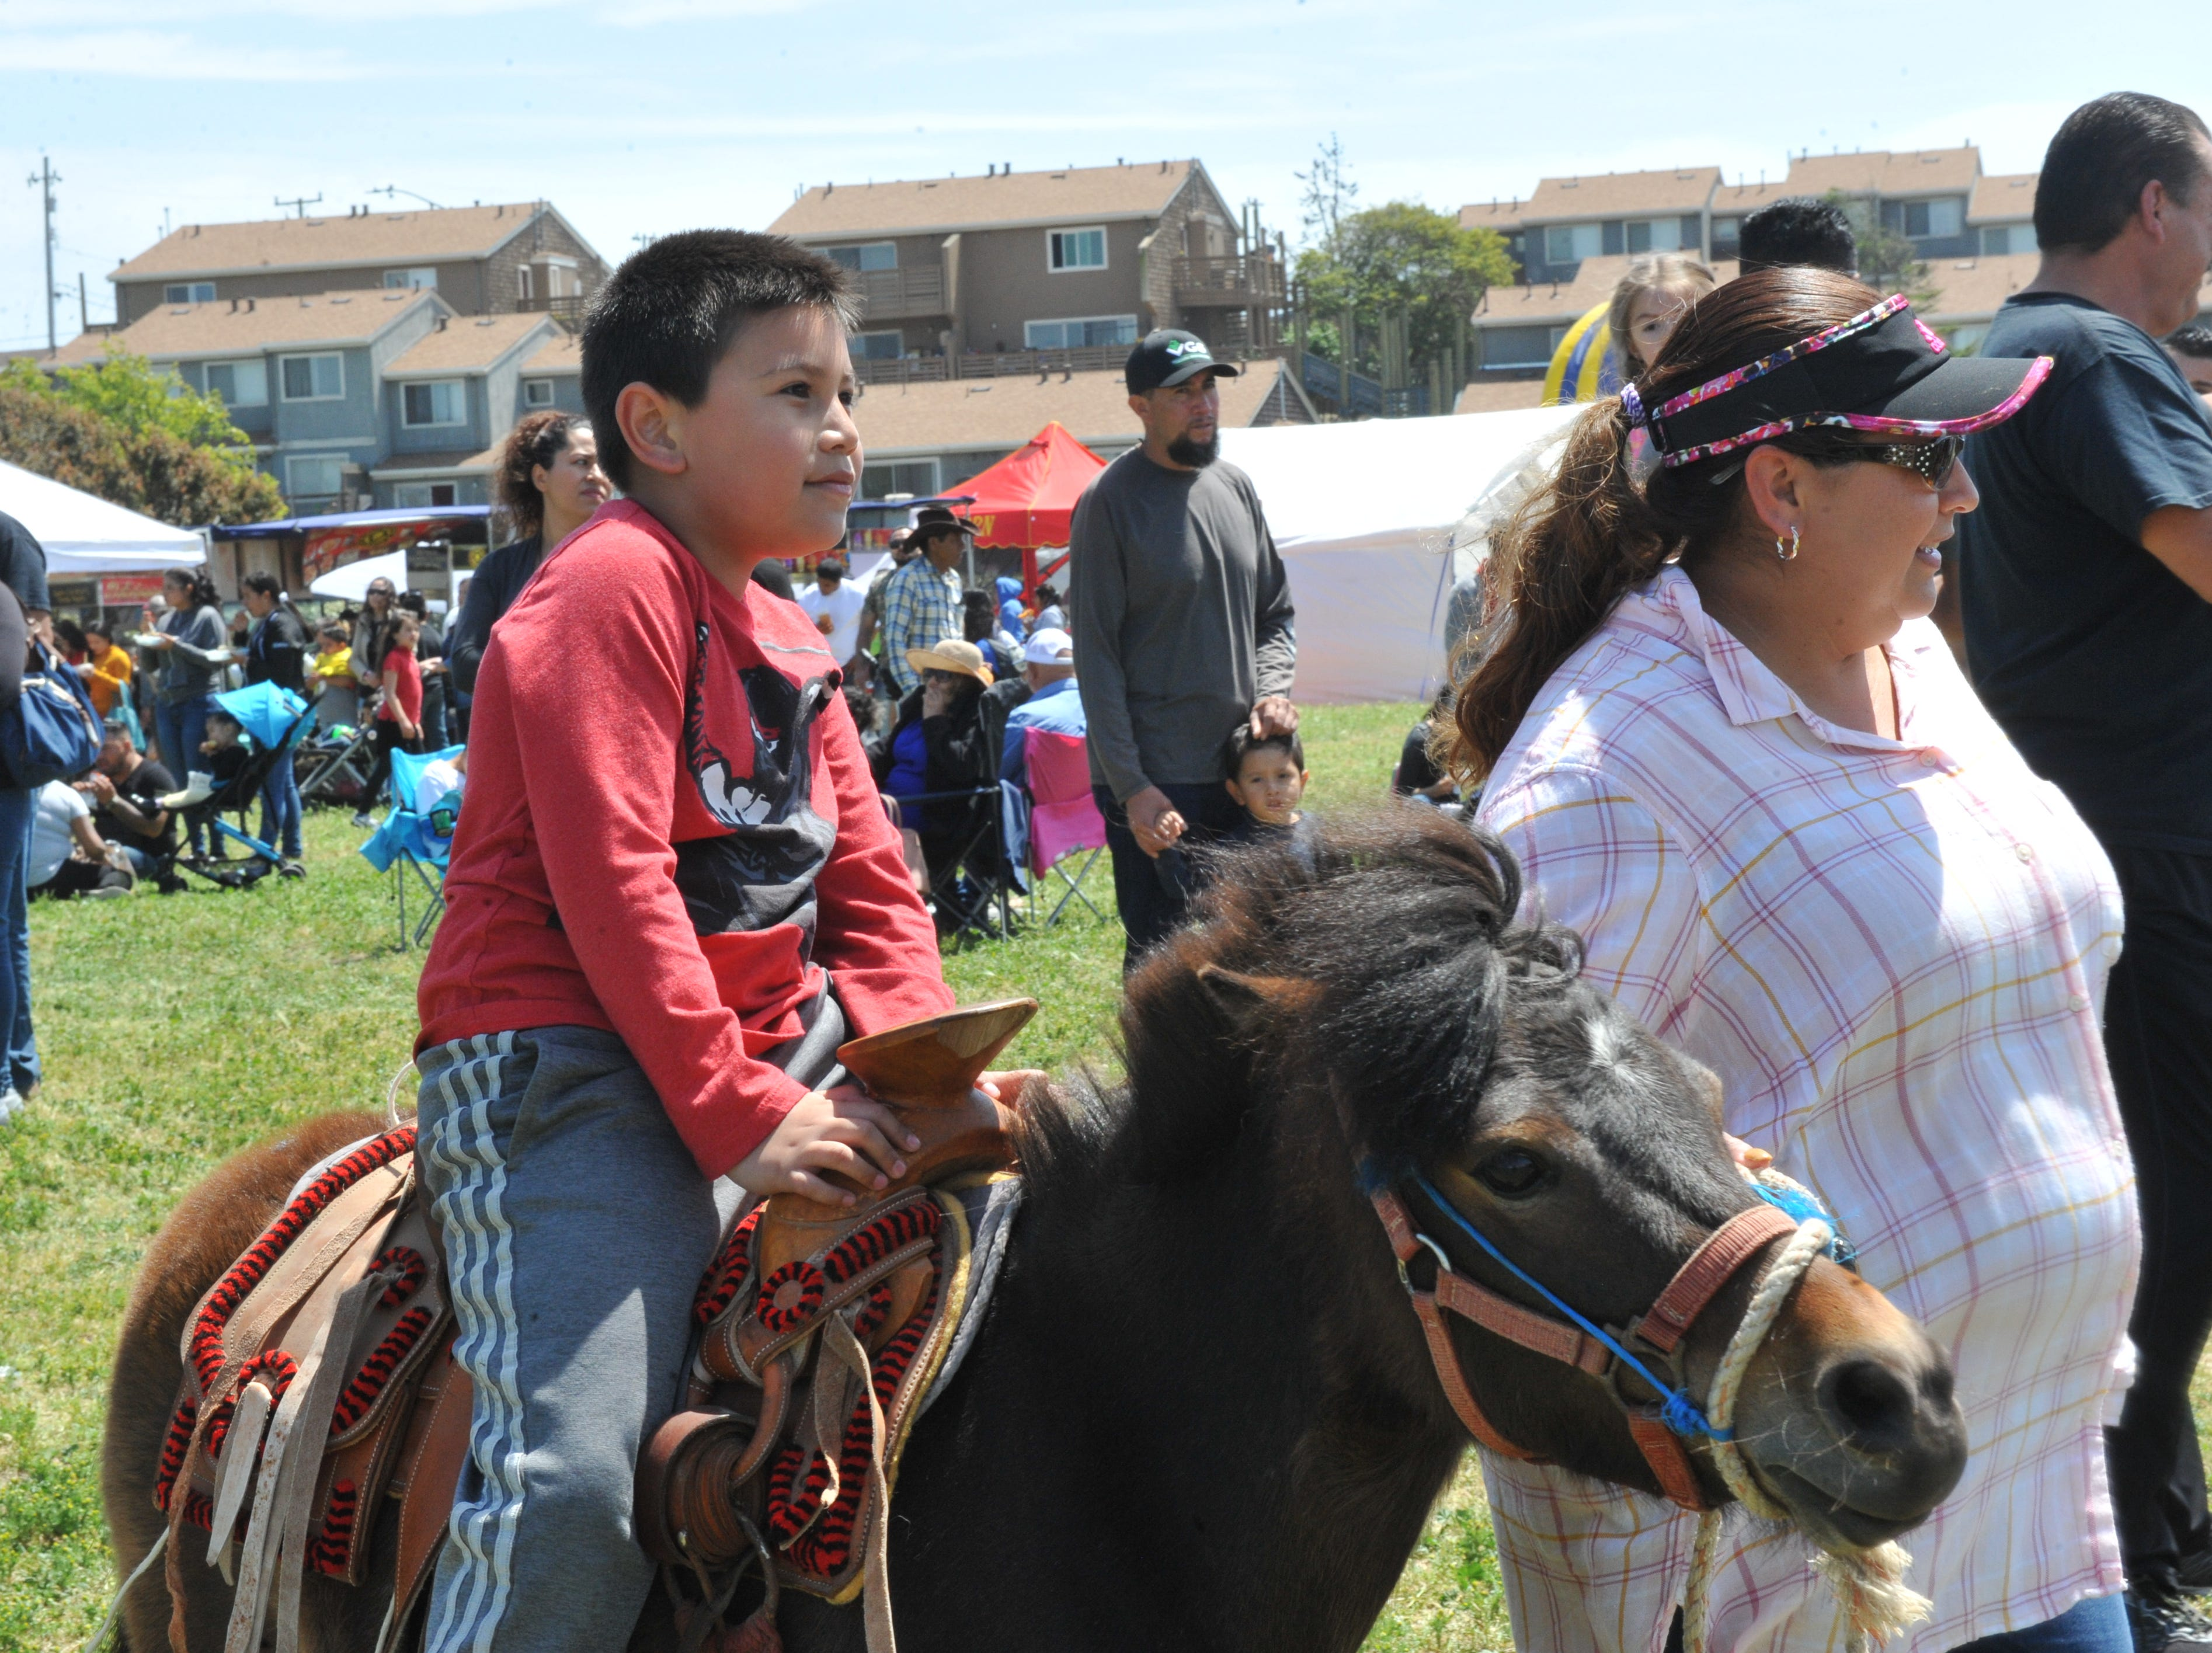 The Día Del Niño on April 28, 2019 featured activities, performances and resources for families in Salinas.